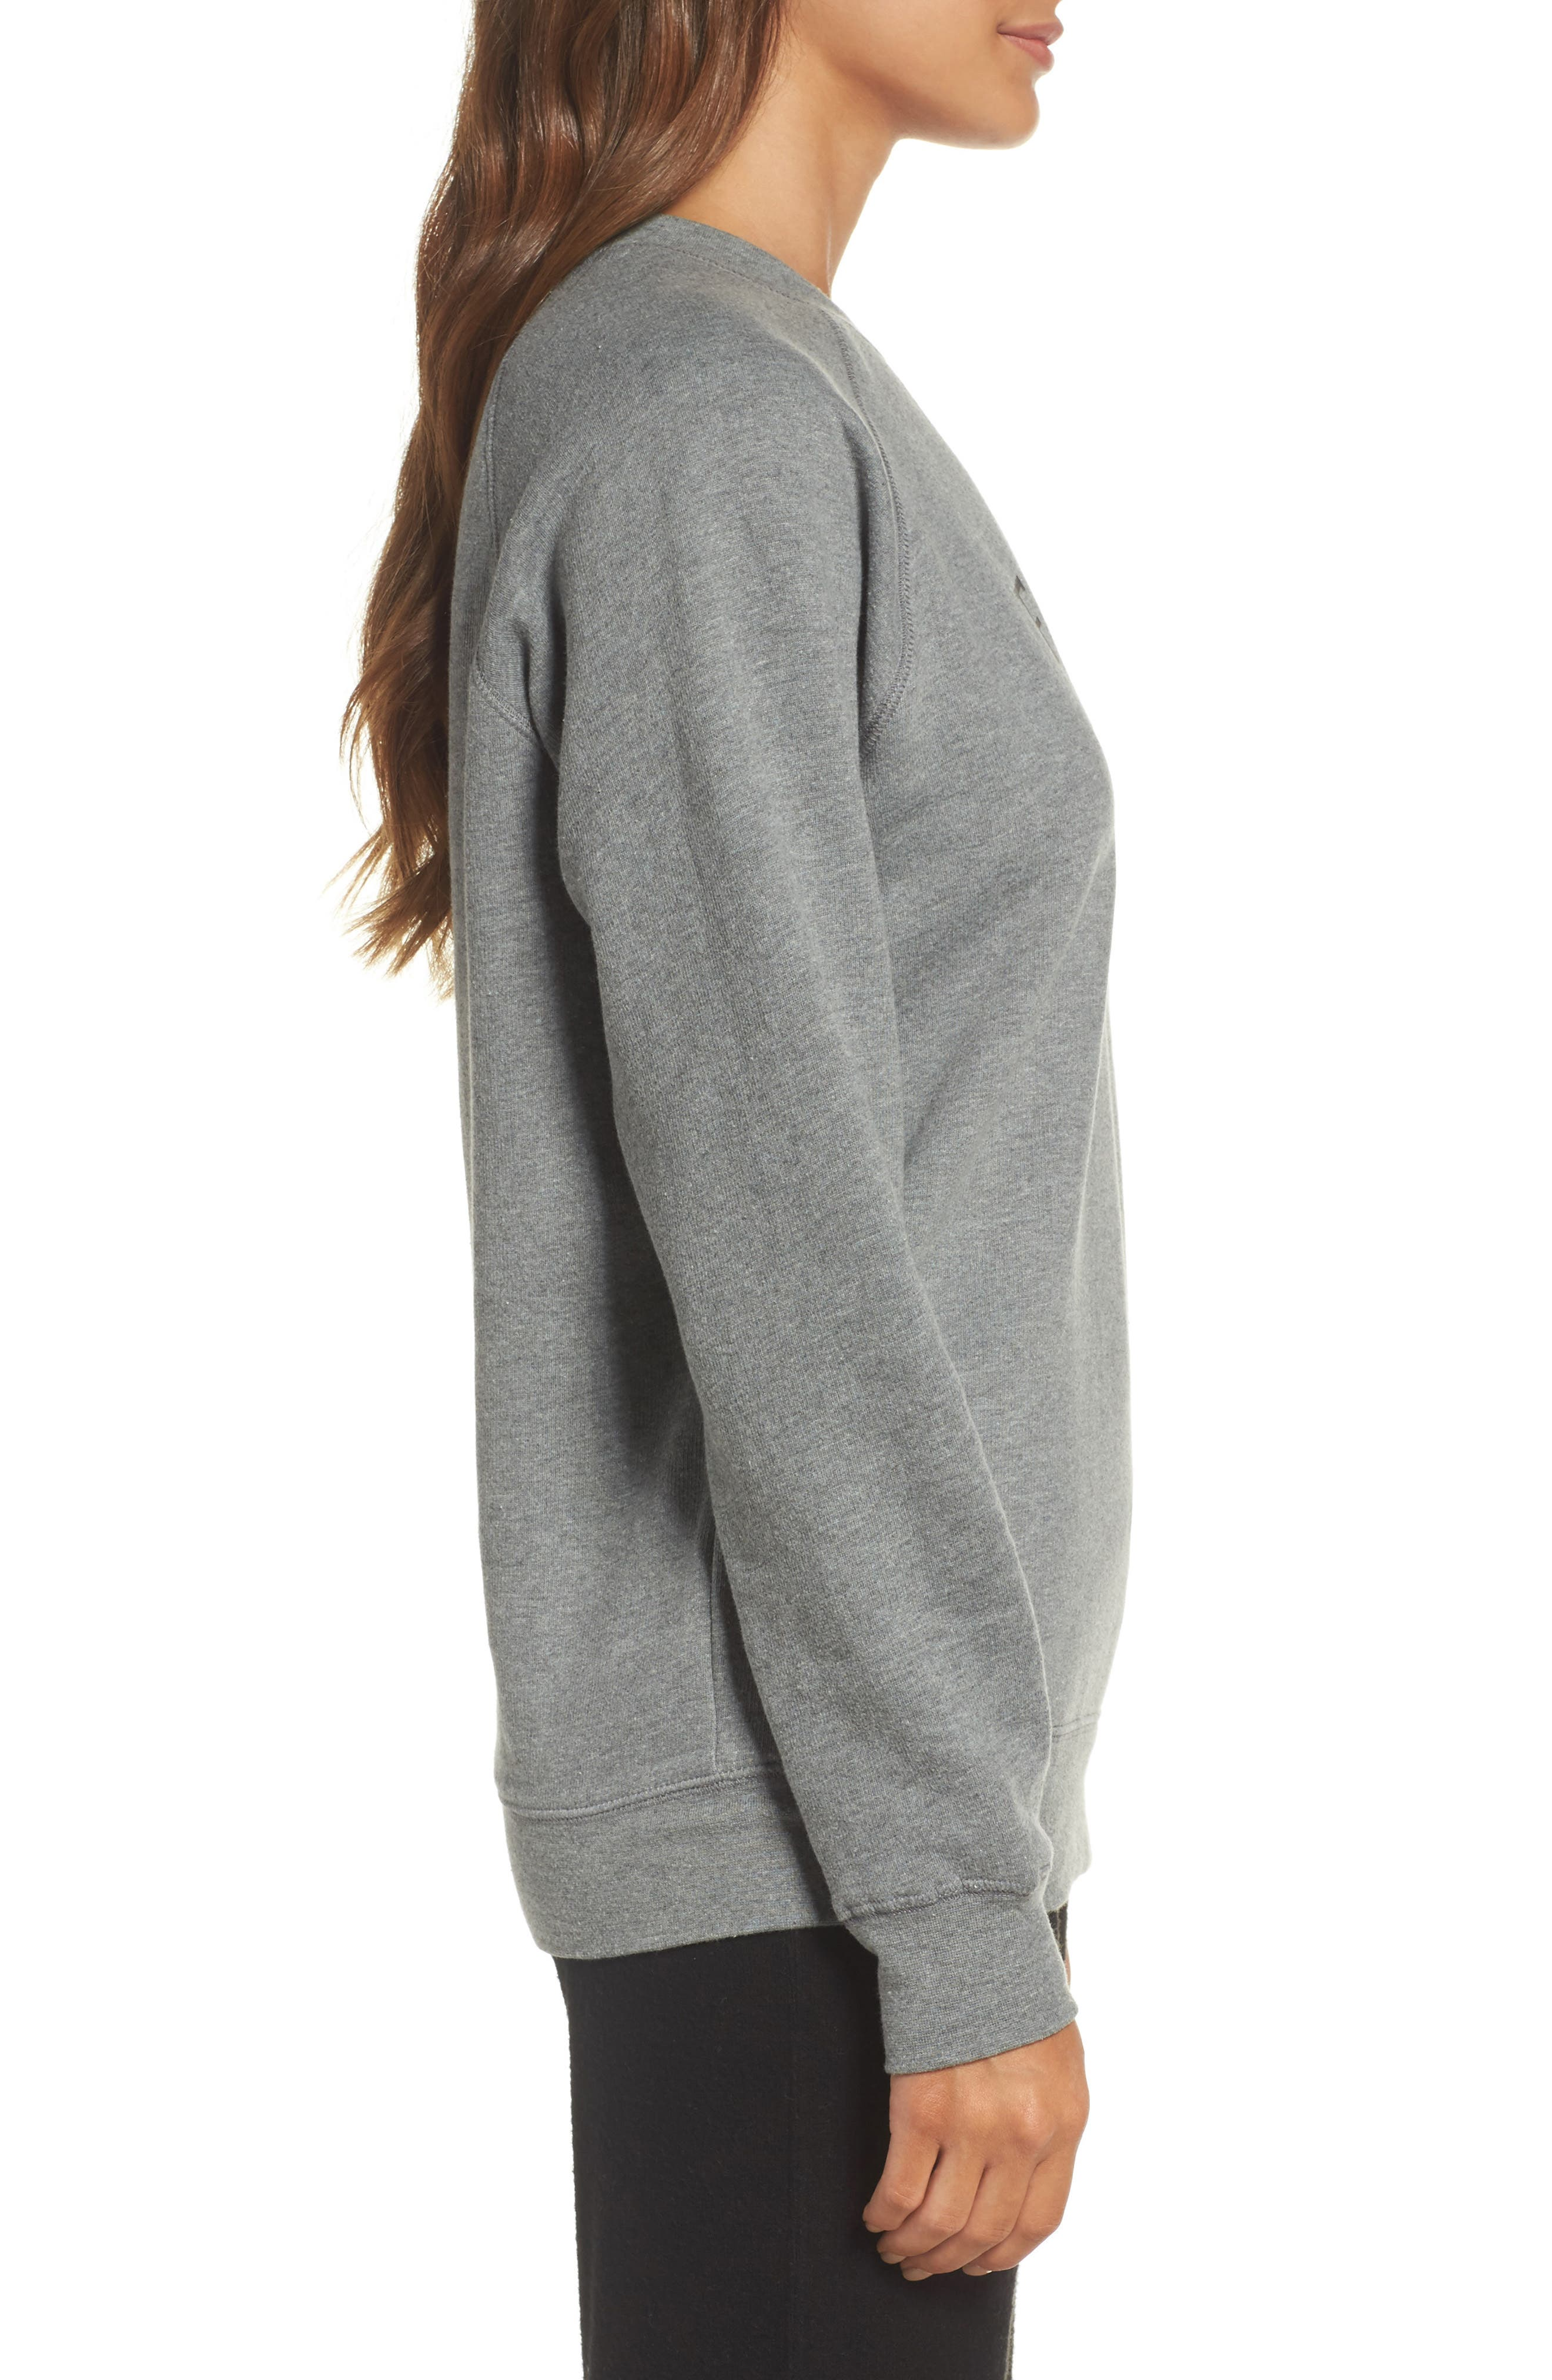 Fries Before Guys Sweatshirt,                             Alternate thumbnail 3, color,                             Grey